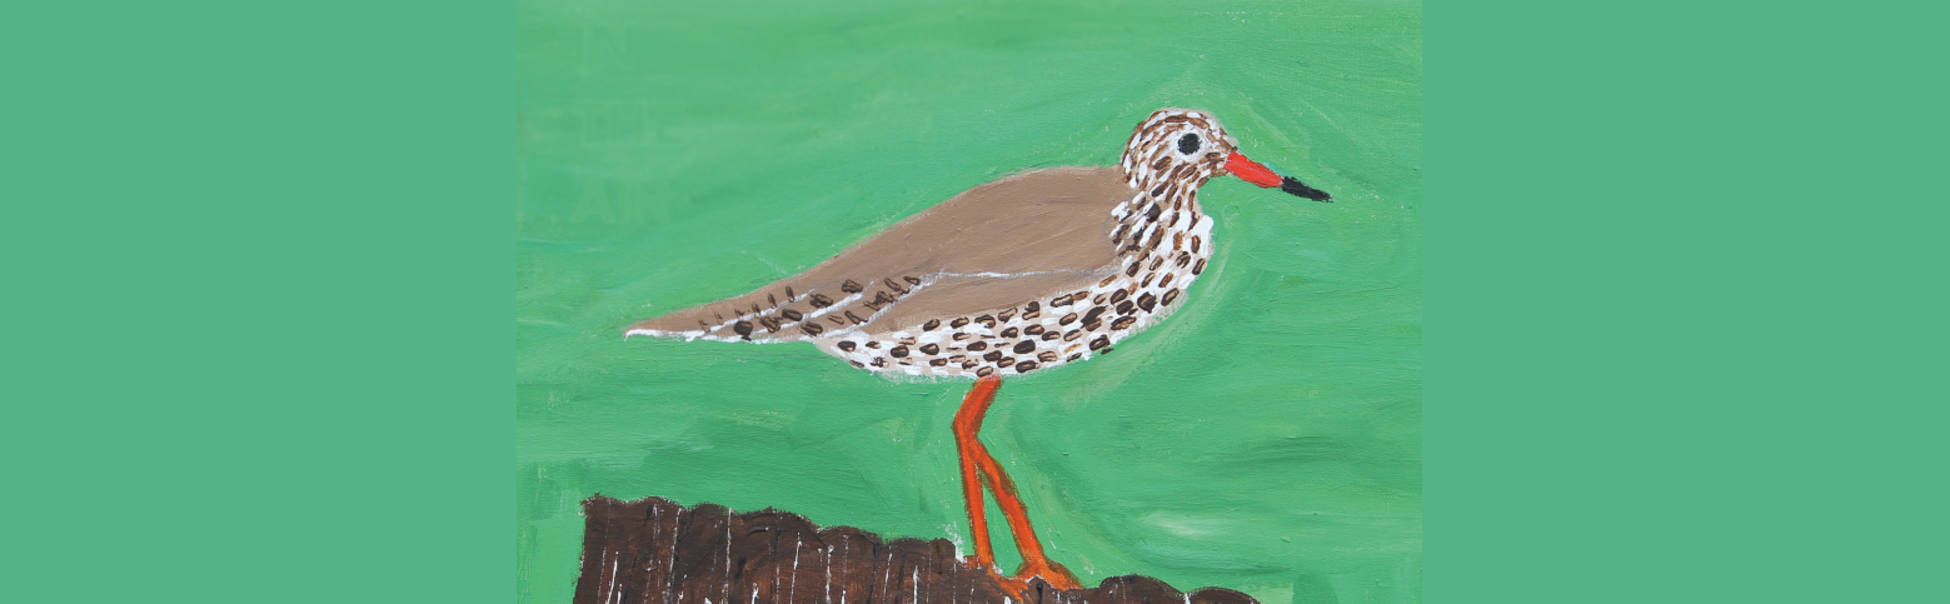 A painting of a curlew perching on a piece of wood, against a bright green background.